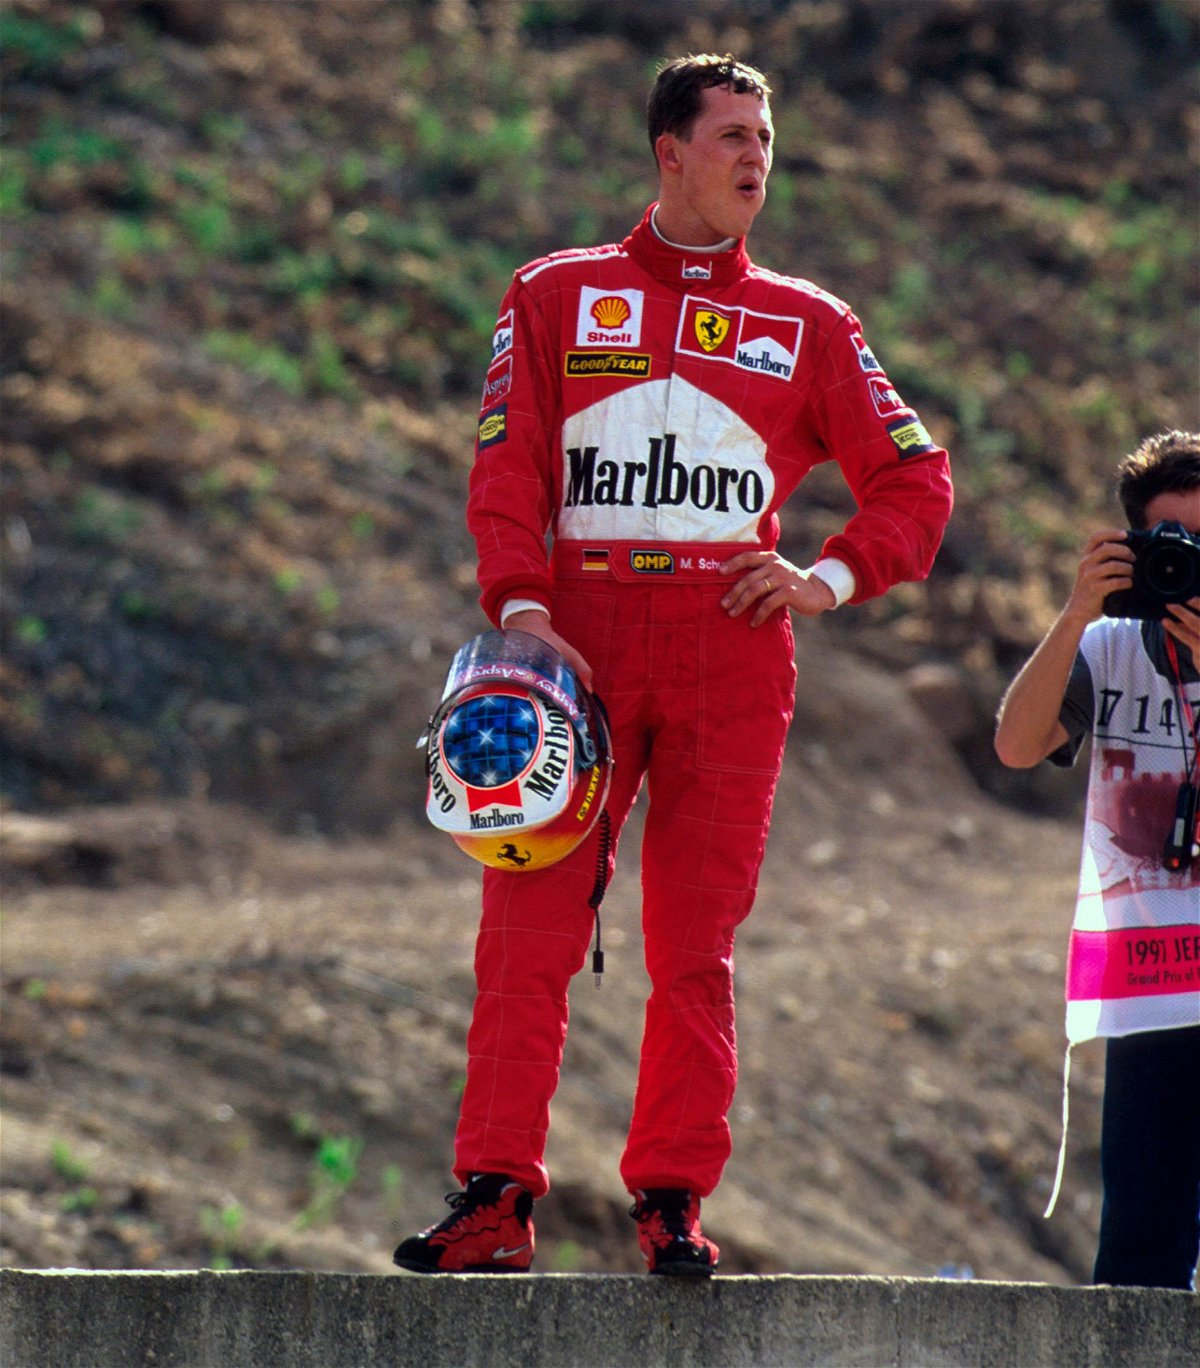 How Michael Schumacher Justified His Dirty Driving In F1